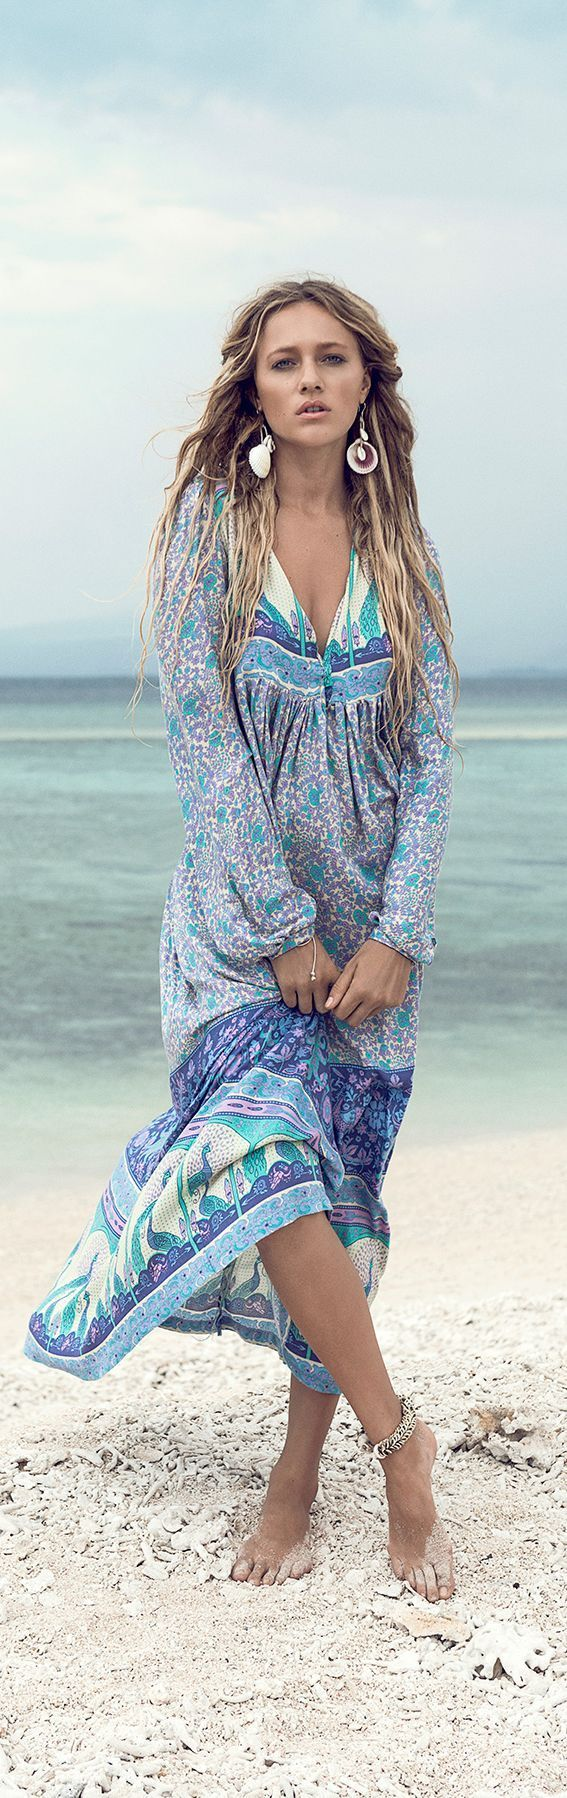 "╰☆╮Boho chic bohemian boho style hippy hippie chic bohème vibe gypsy fashion indie folk the 70s . ╰☆╮ ""Island Boho"" by Spell Designs More - clothing, mens, winter, for women, country, cute clothes *ad"